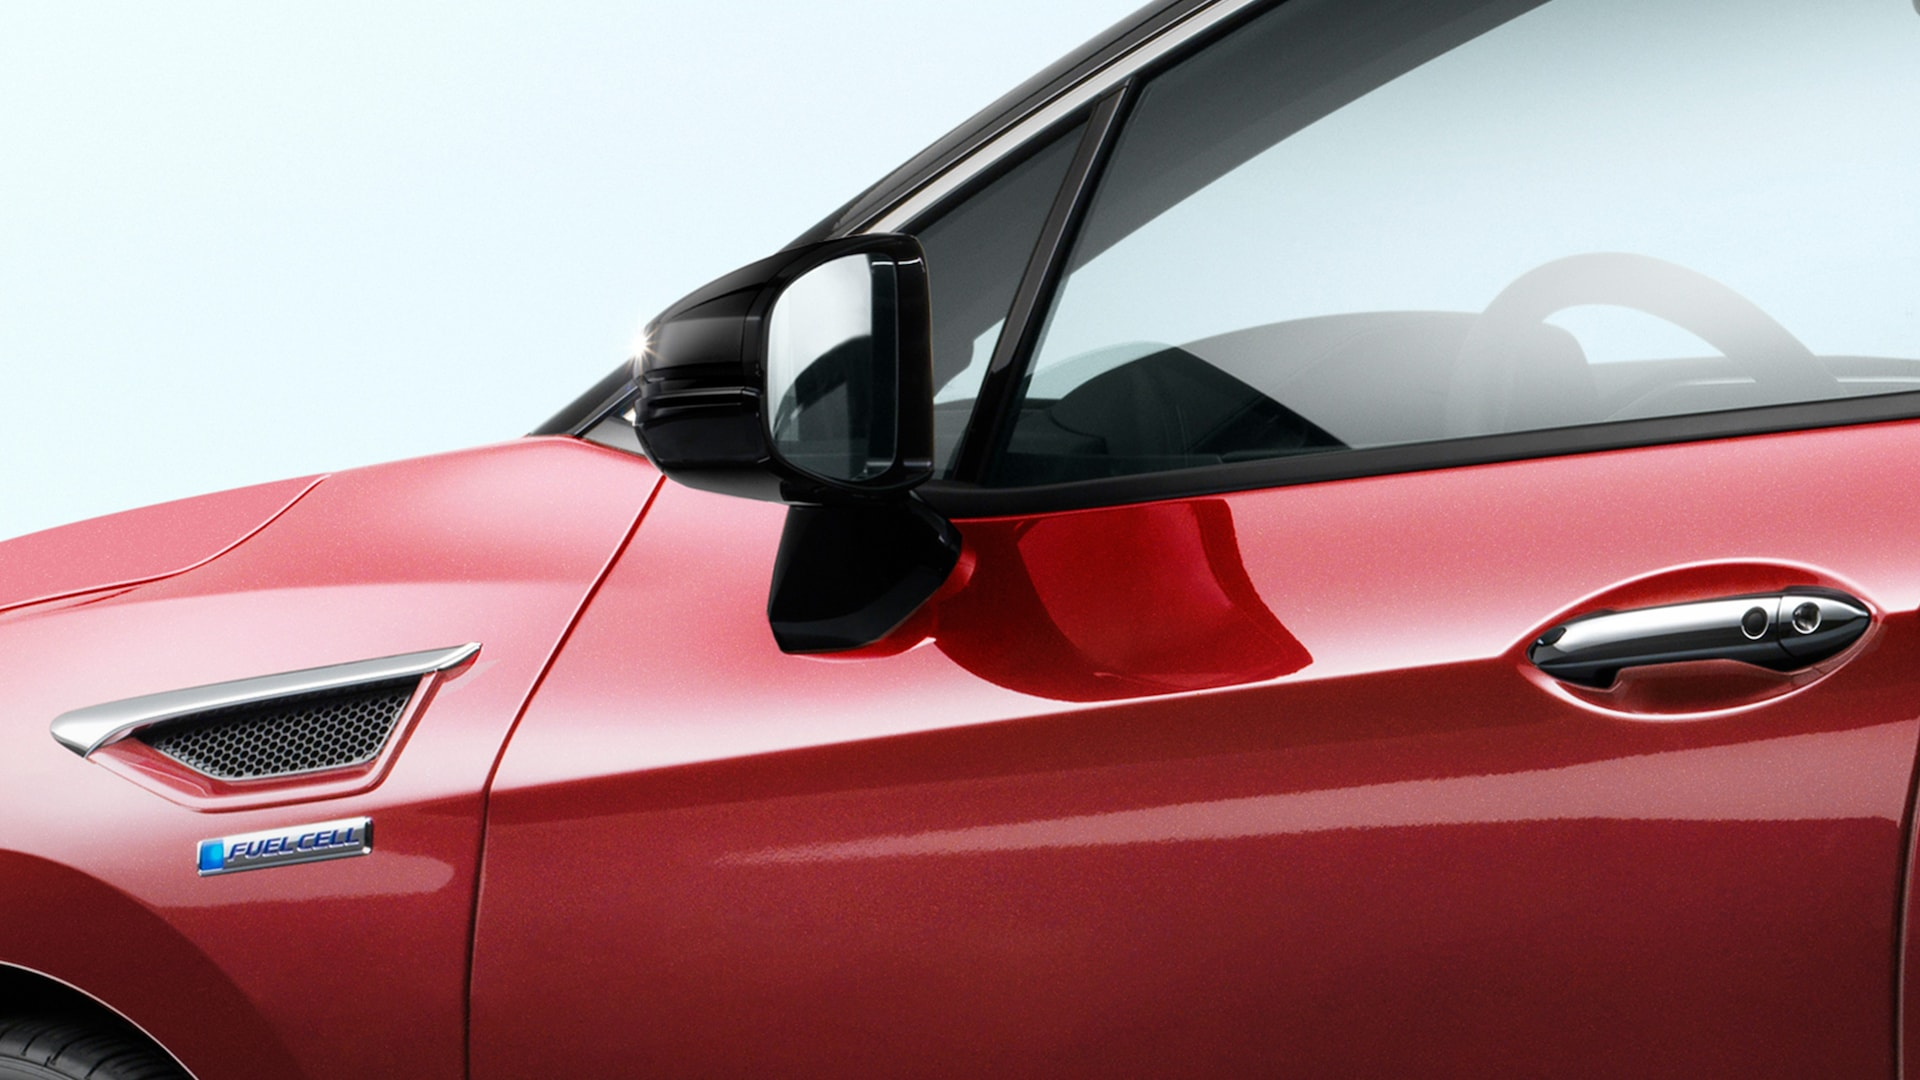 Detail of the heated side rear view mirrors on the 2021 Honda Clarity Fuel Cell in Crimson Pearl.